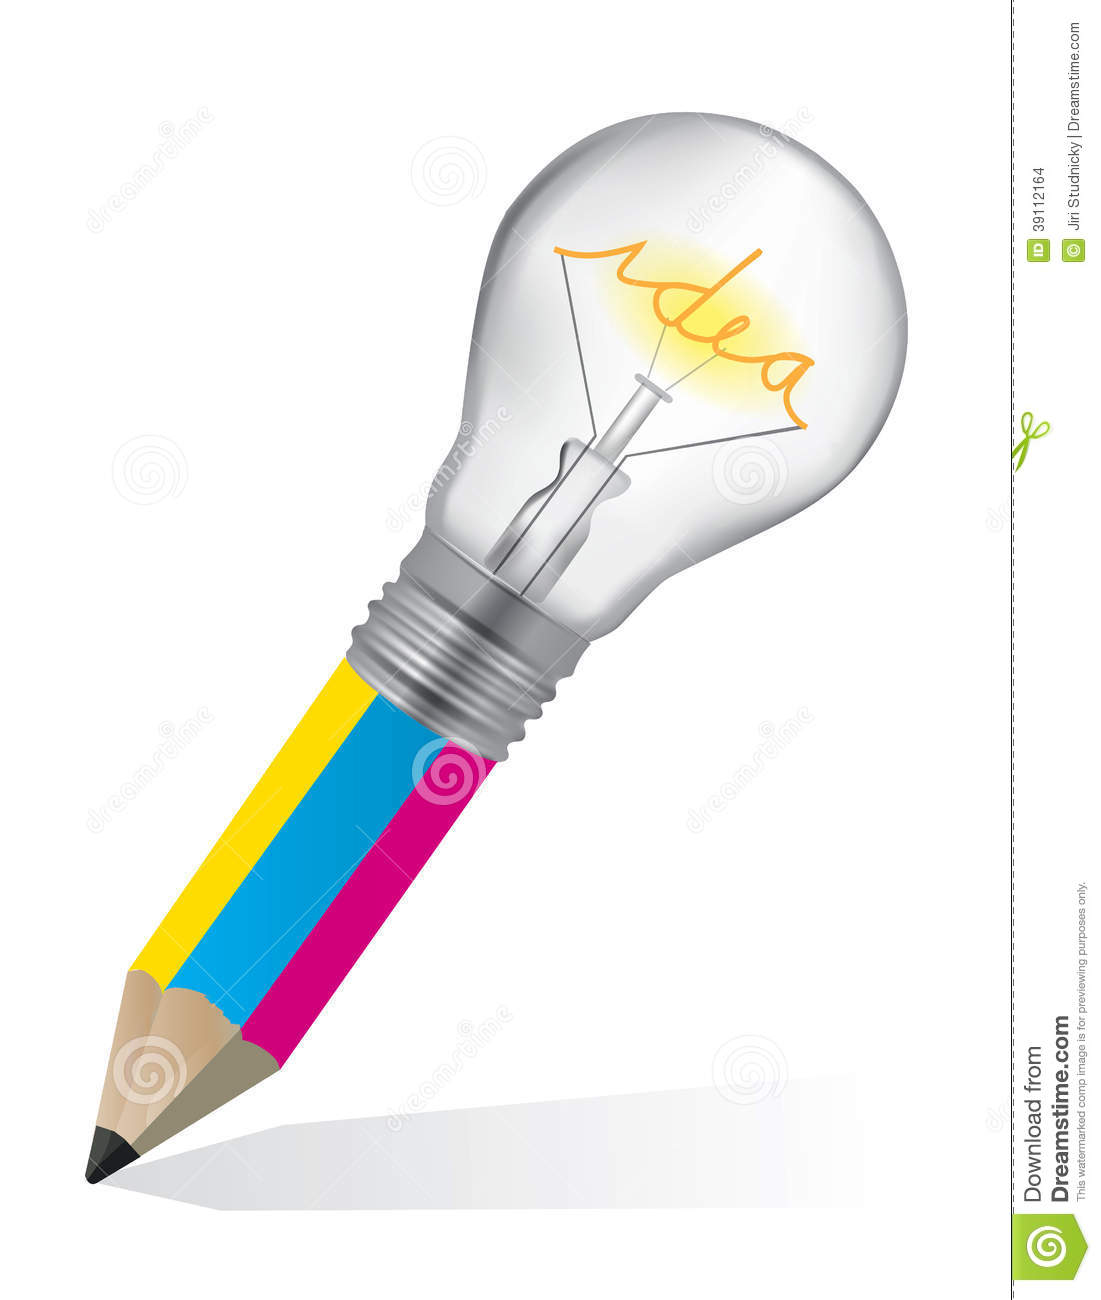 colorful pencil with light bulb symbolizing creativity vector